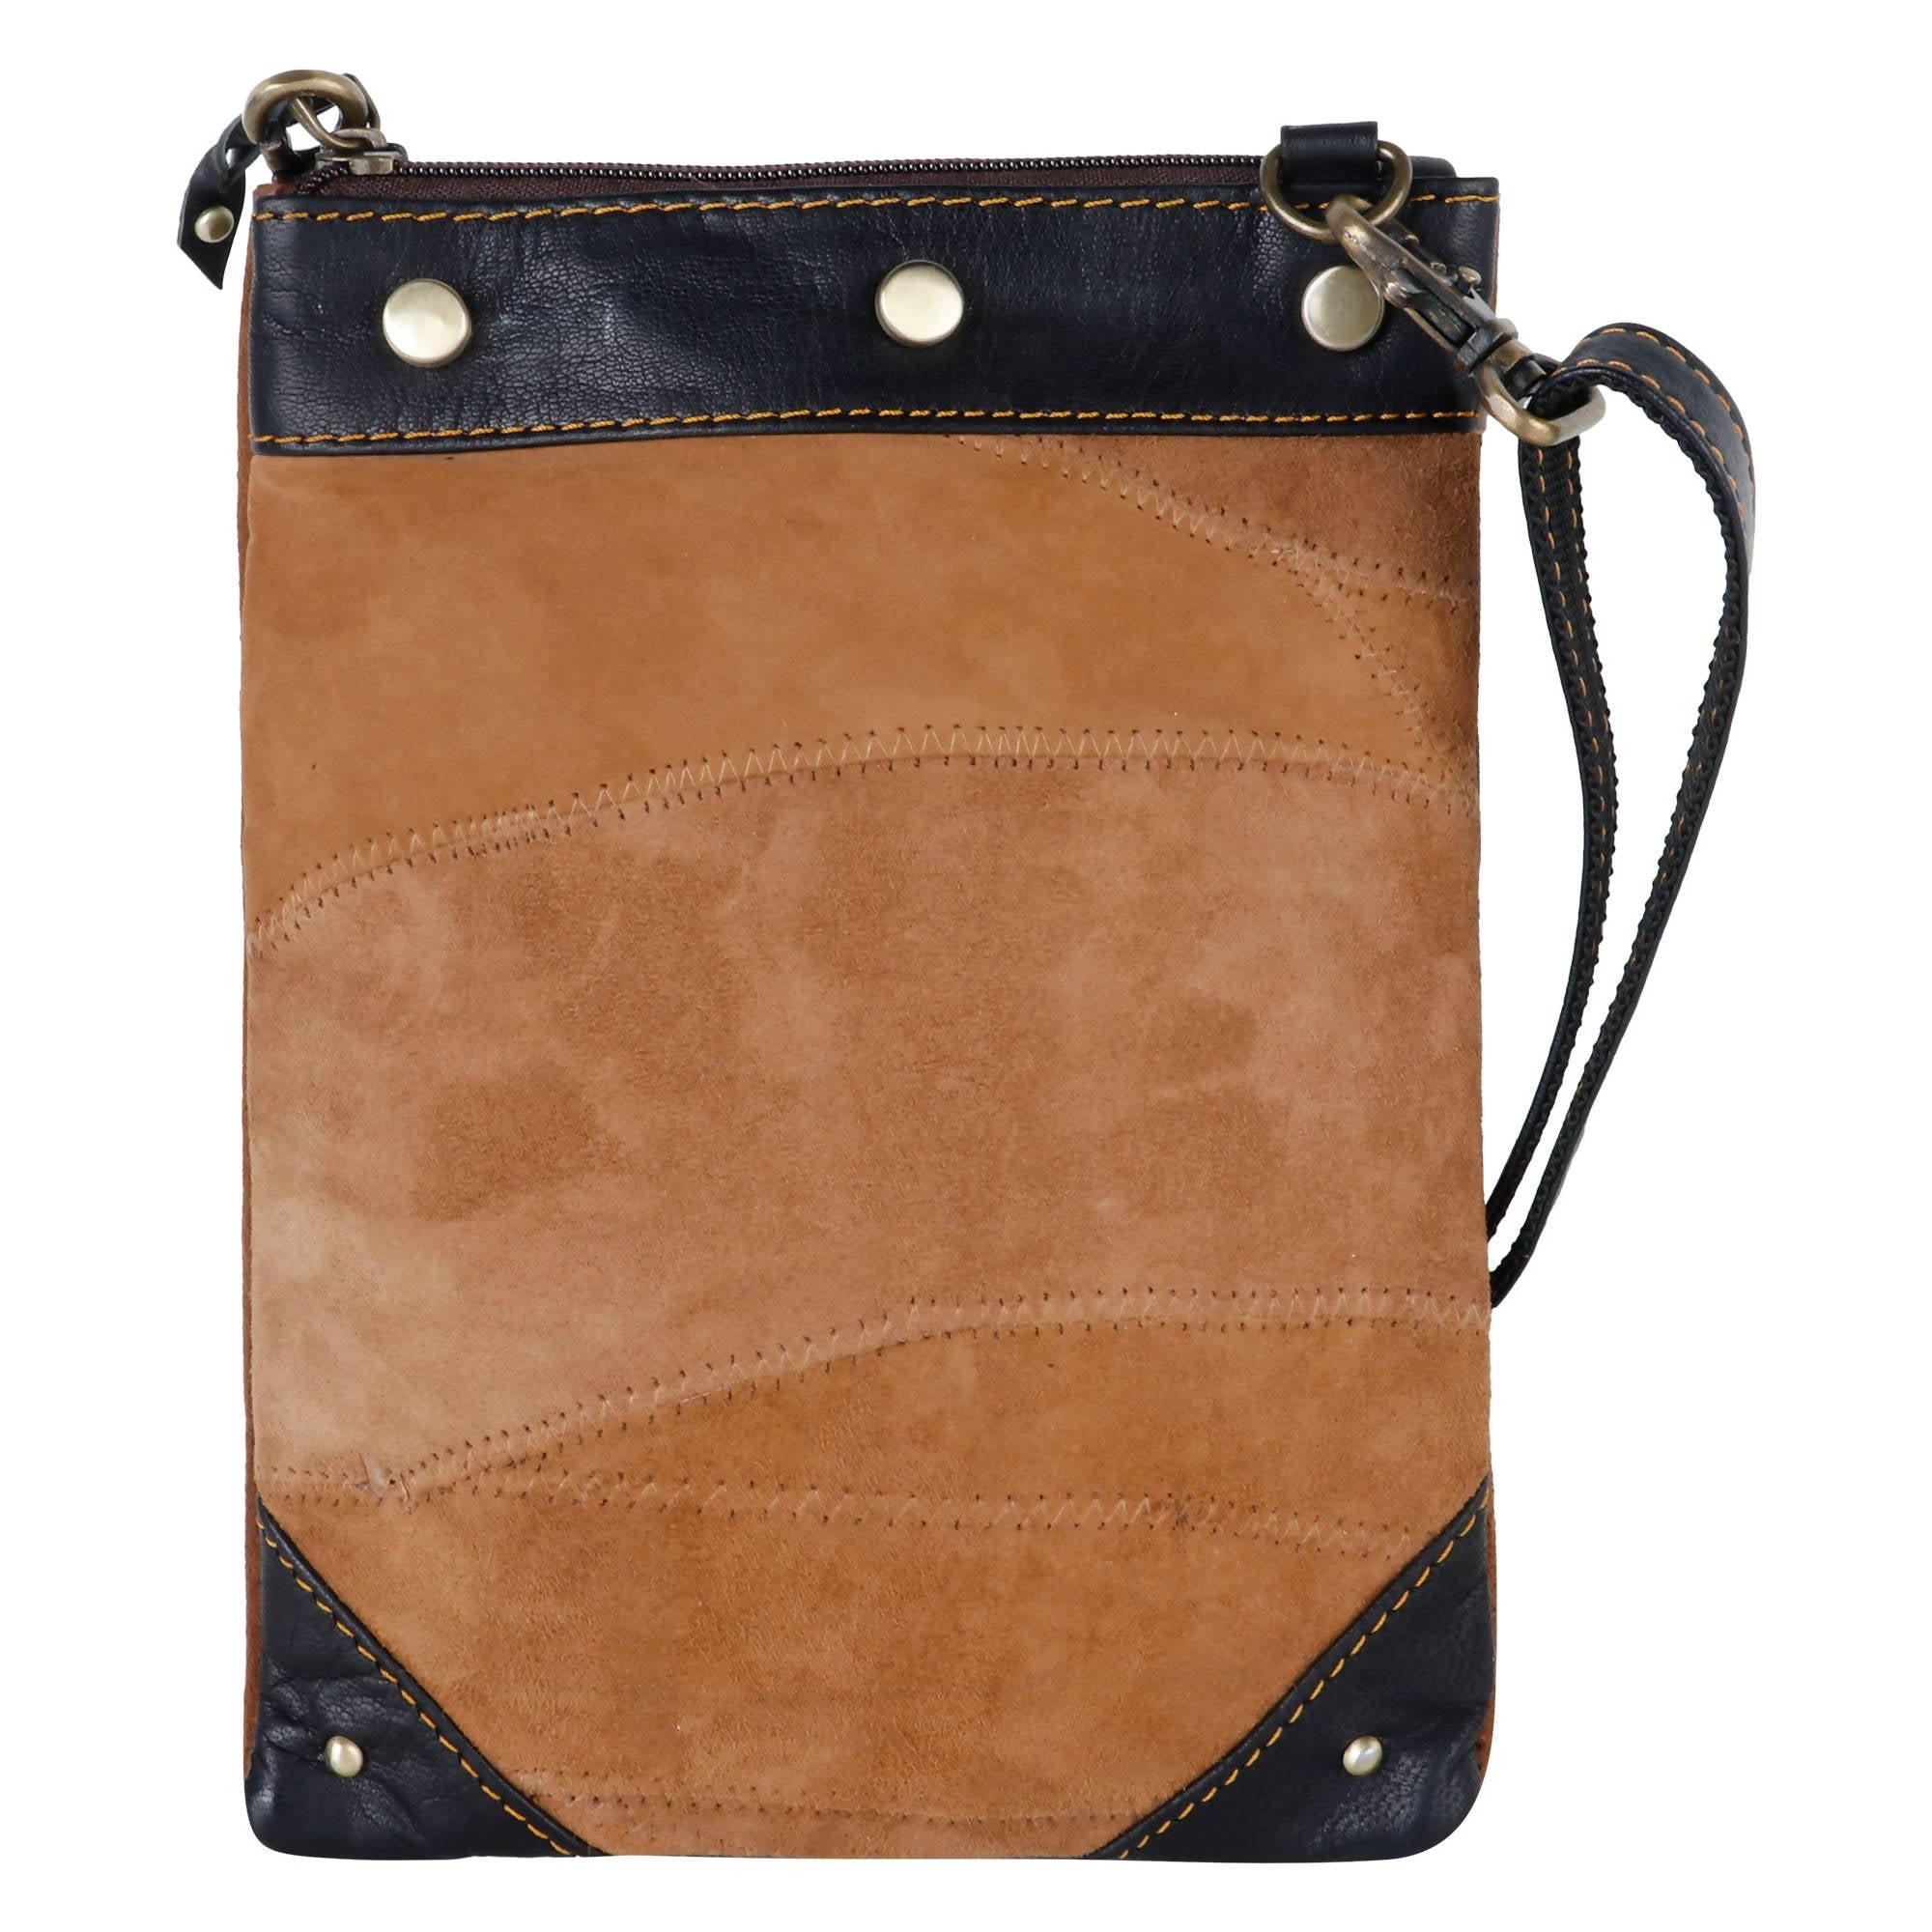 Tribecca - Upcycled Genuine Leather